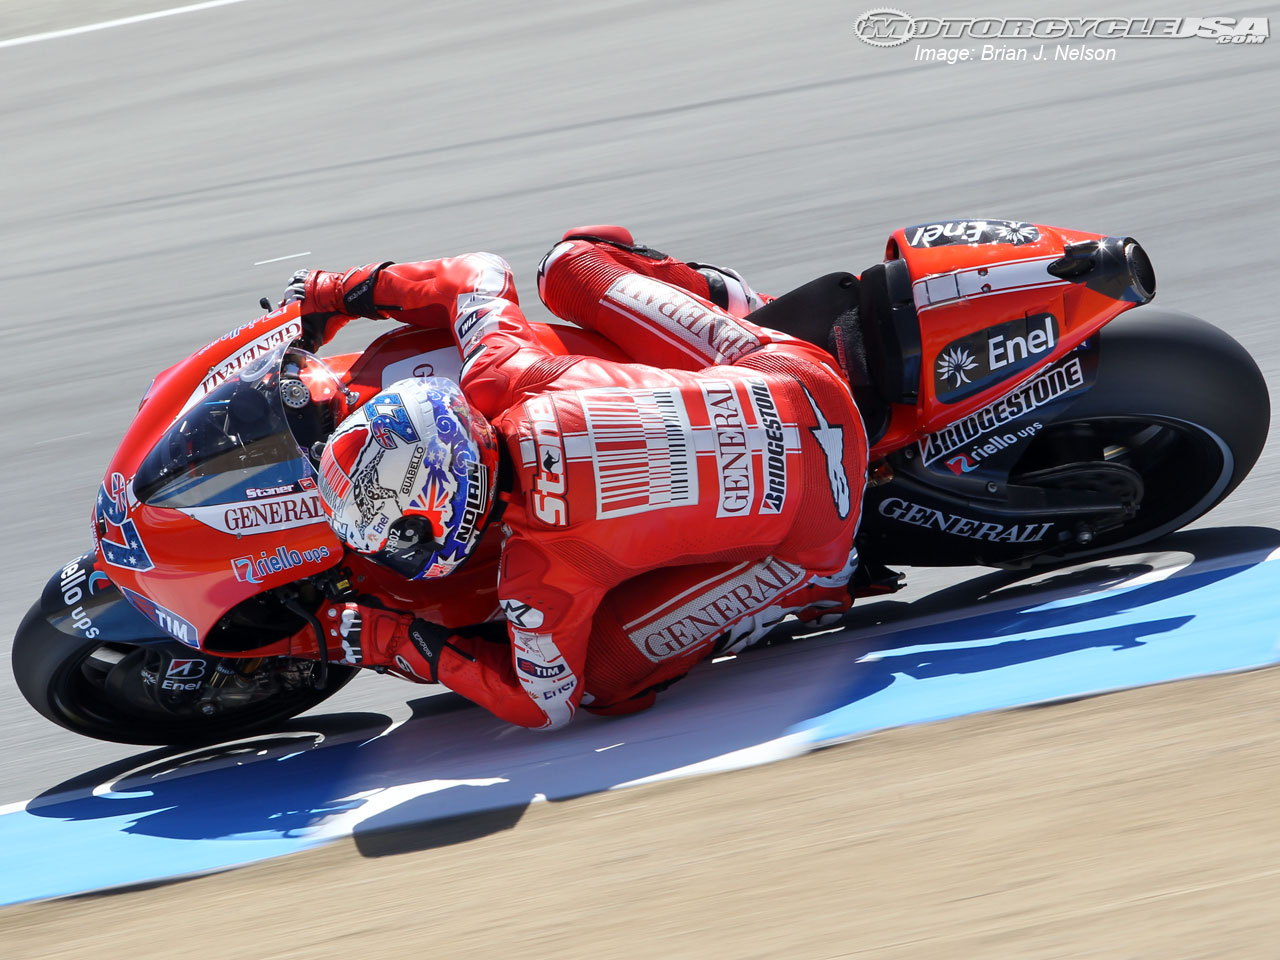 Download full size MotoGP wallpaper / Sports / 1280x960